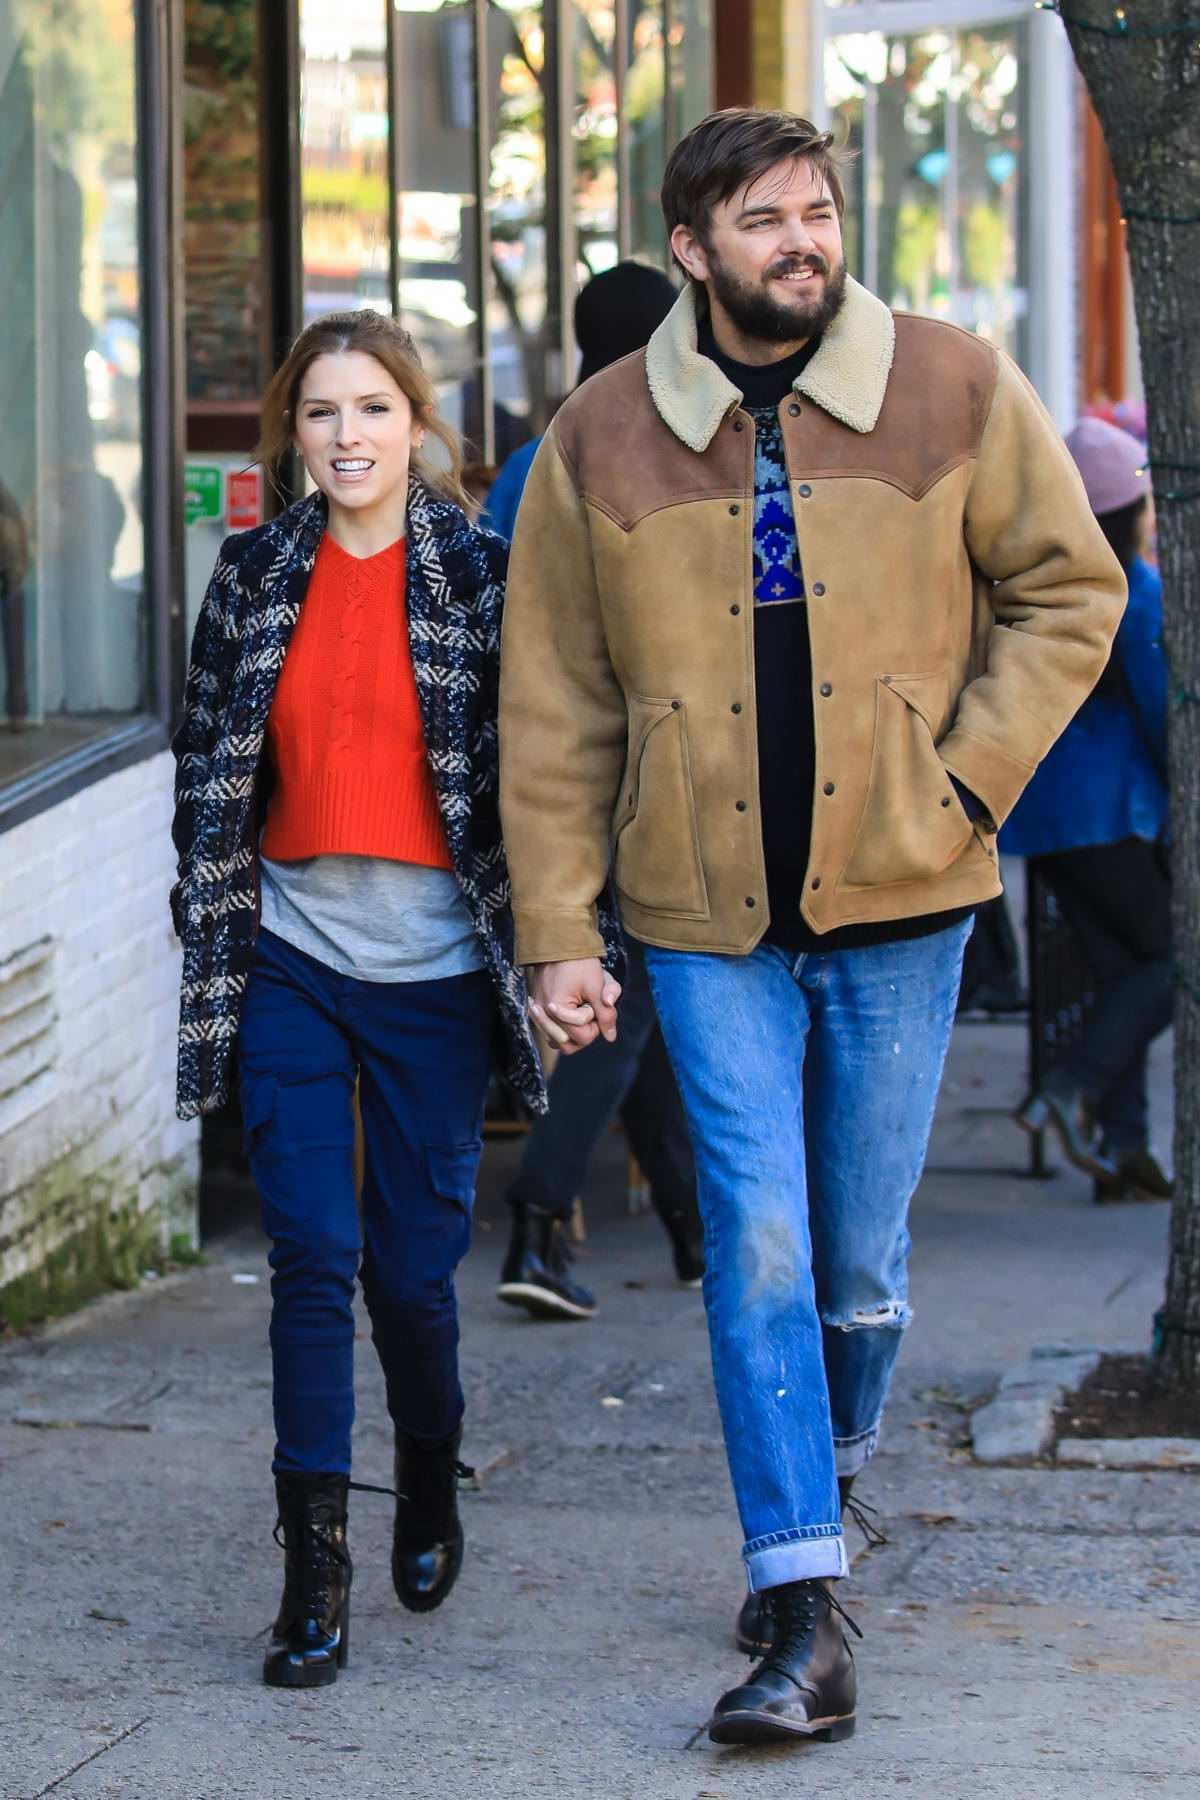 Anna Kendrick holds hands with a fellow actor while filming scenes for 'Love Life' in Tarrytown, New York